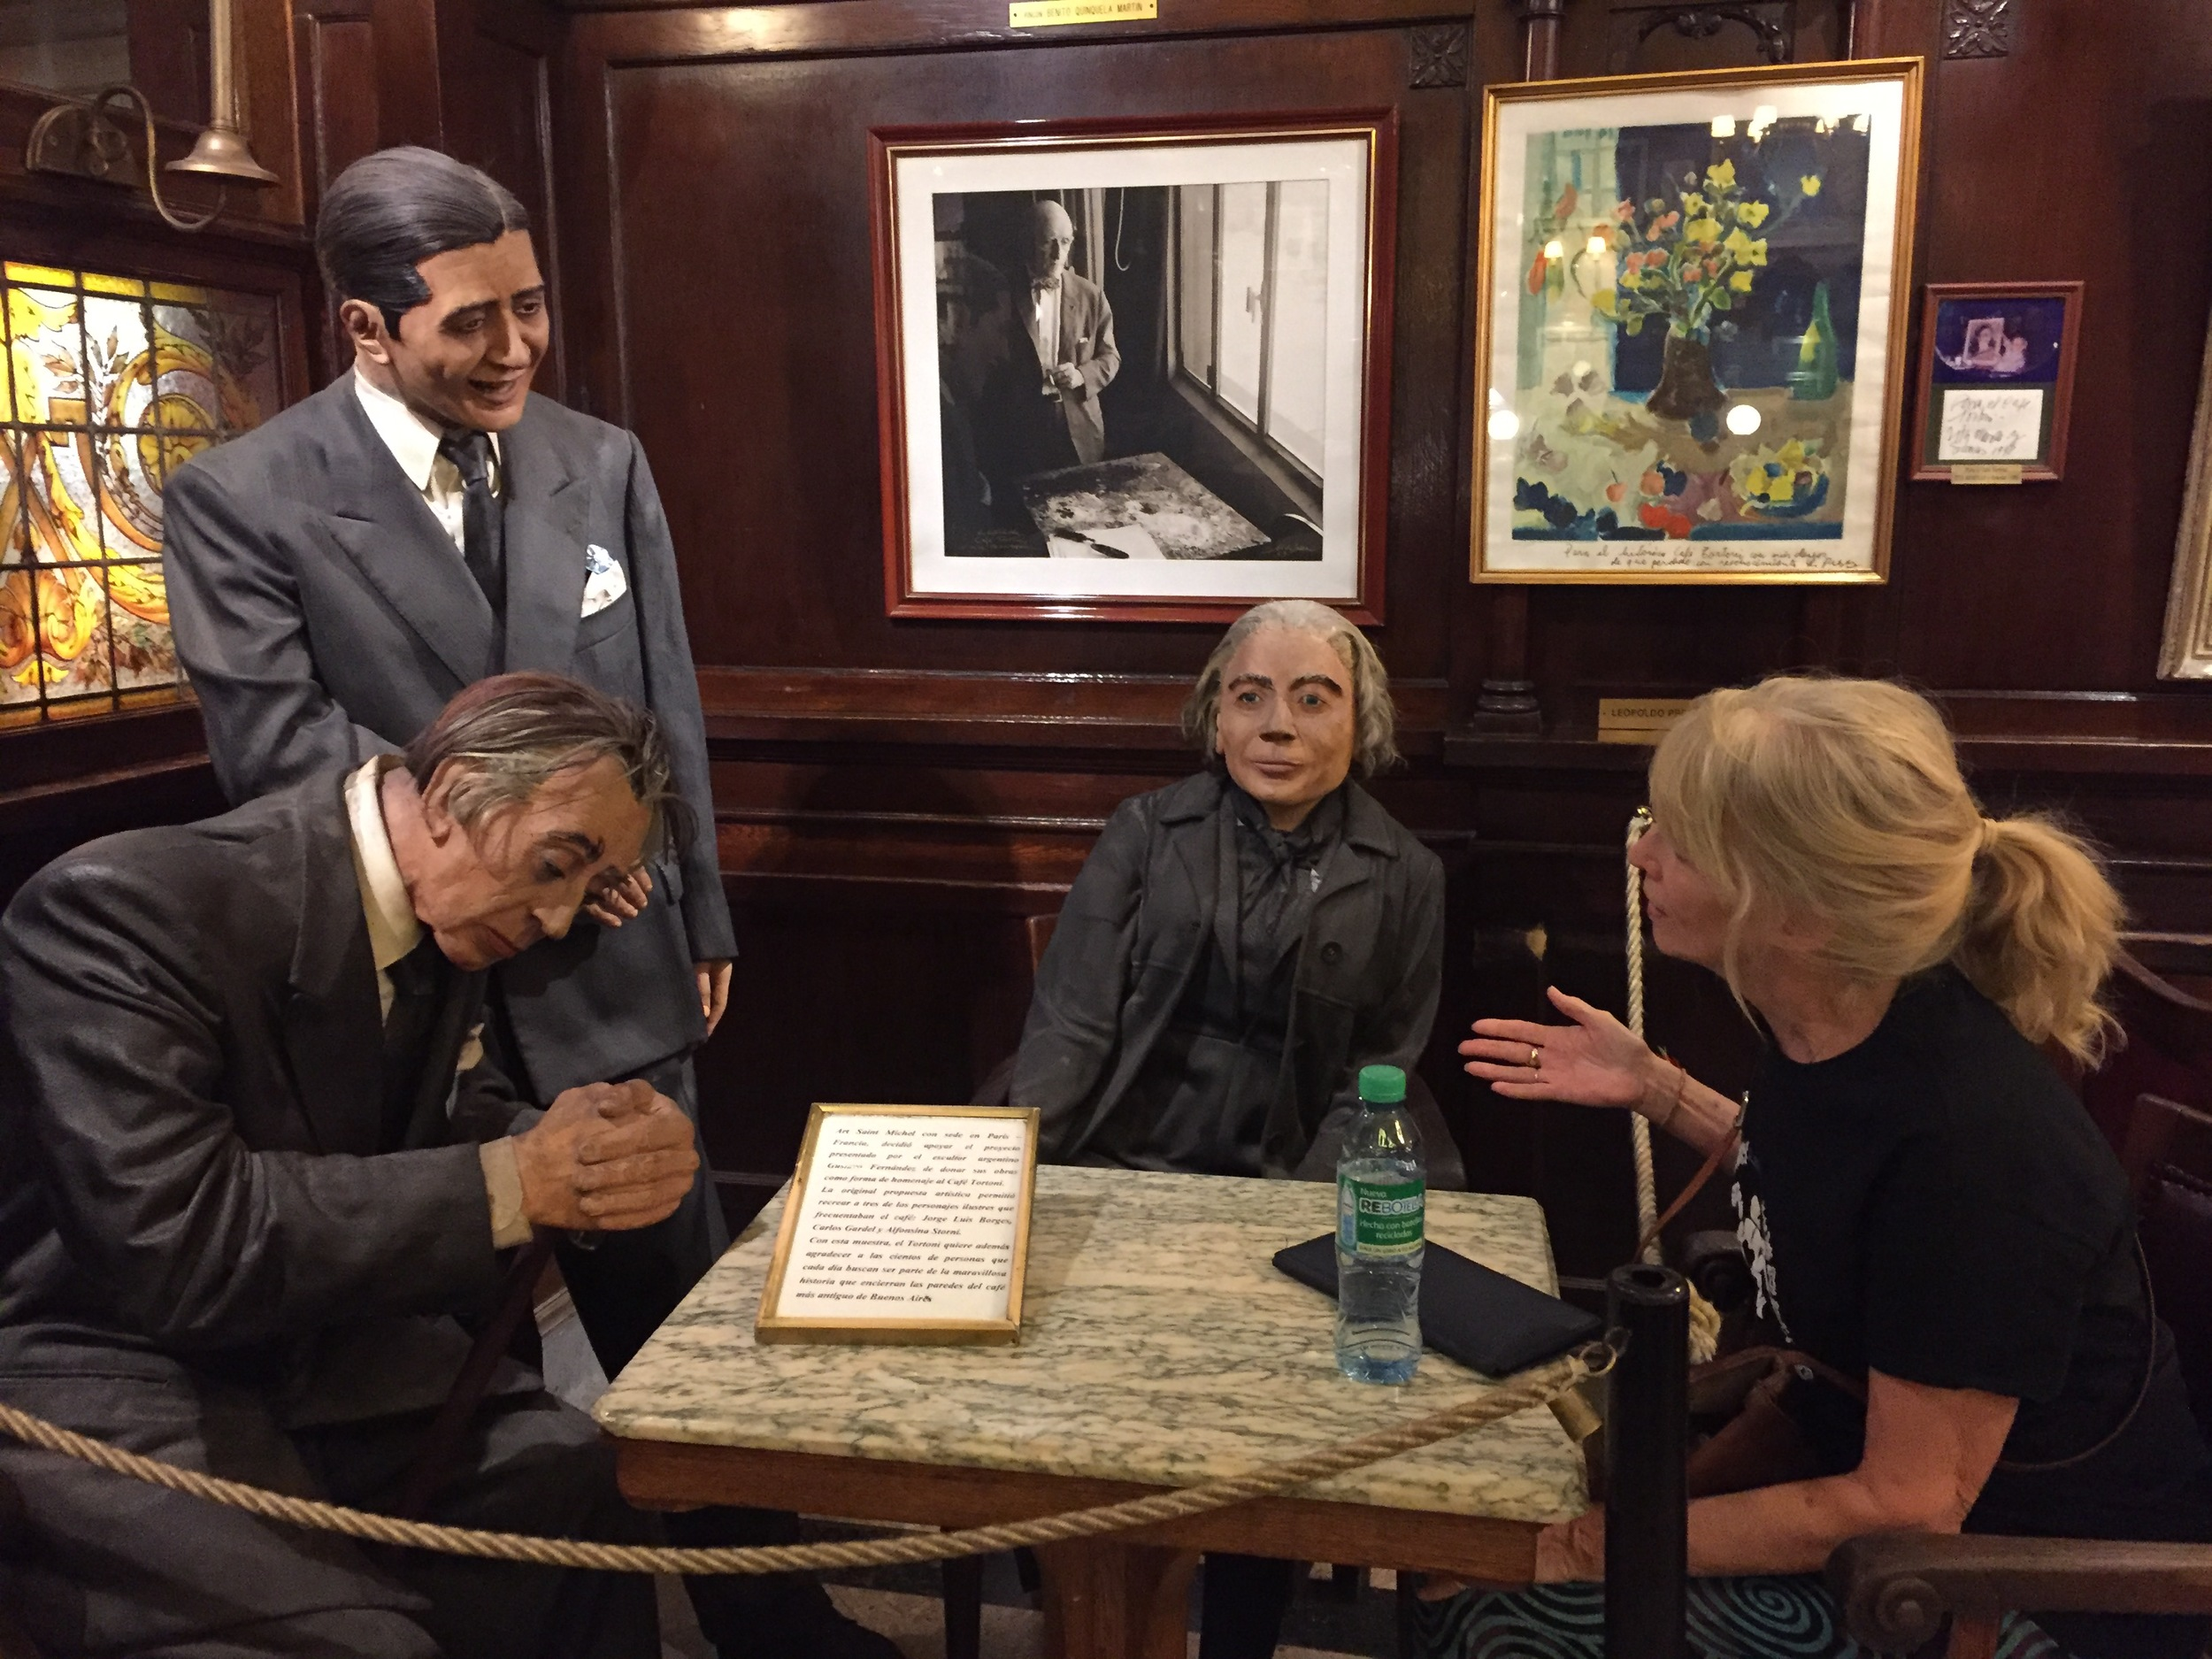 My fantasy conversation with  poet Jorge Luis Borges, tango legend Carlos Gardel and poet Alfonsina Storni  at the Gran Cafe Tortoni in Buenos Aires. (They are actually wax figures memorializing these great figures who used to hang out at the cafe.